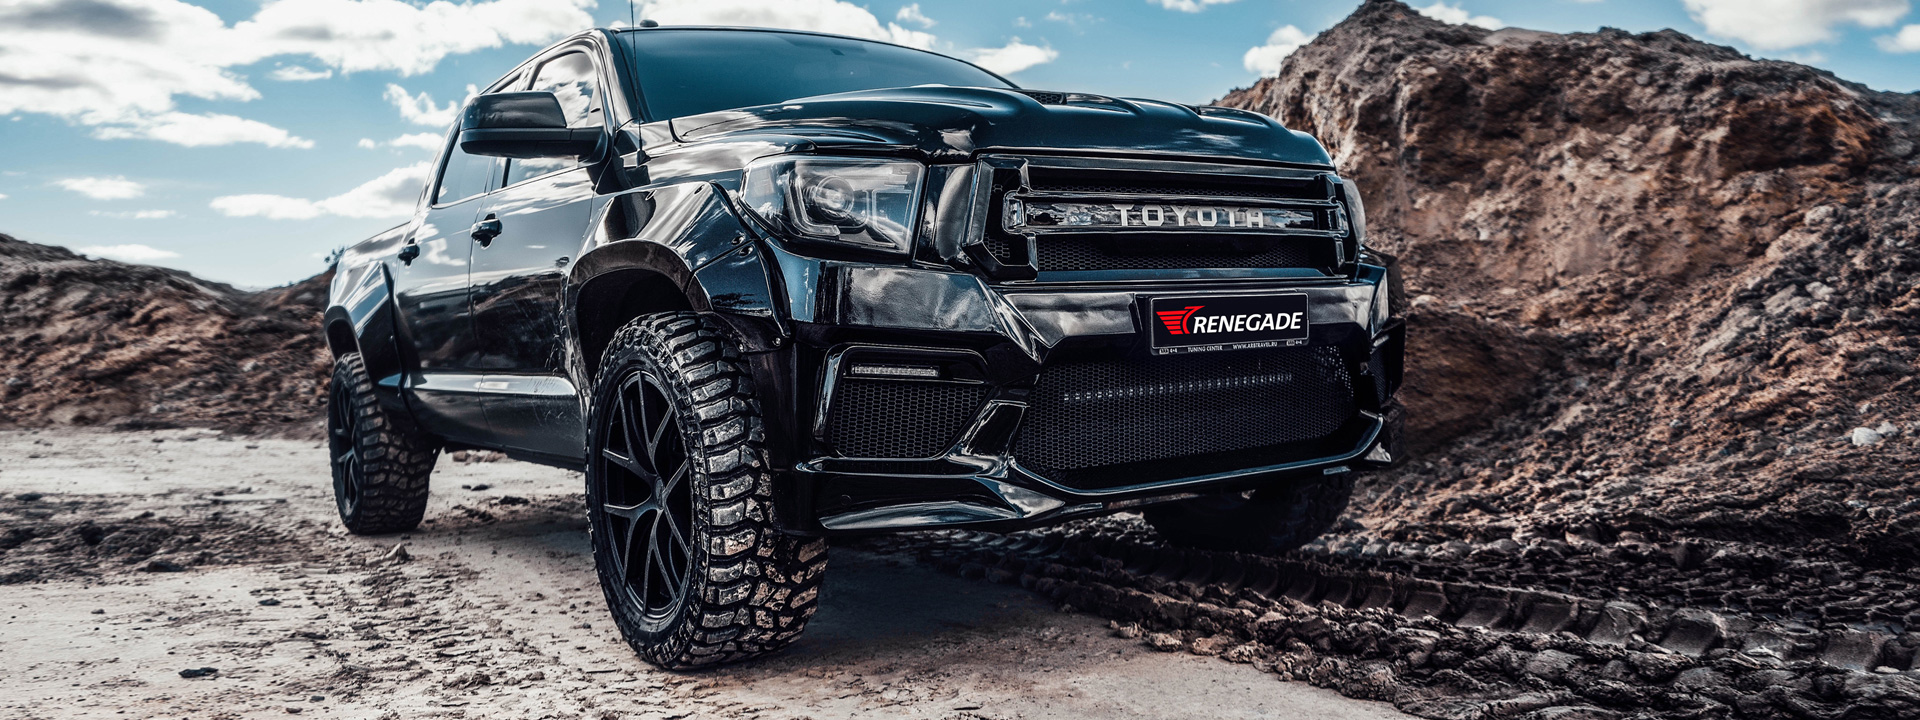 New body kit for Toyota Tundra